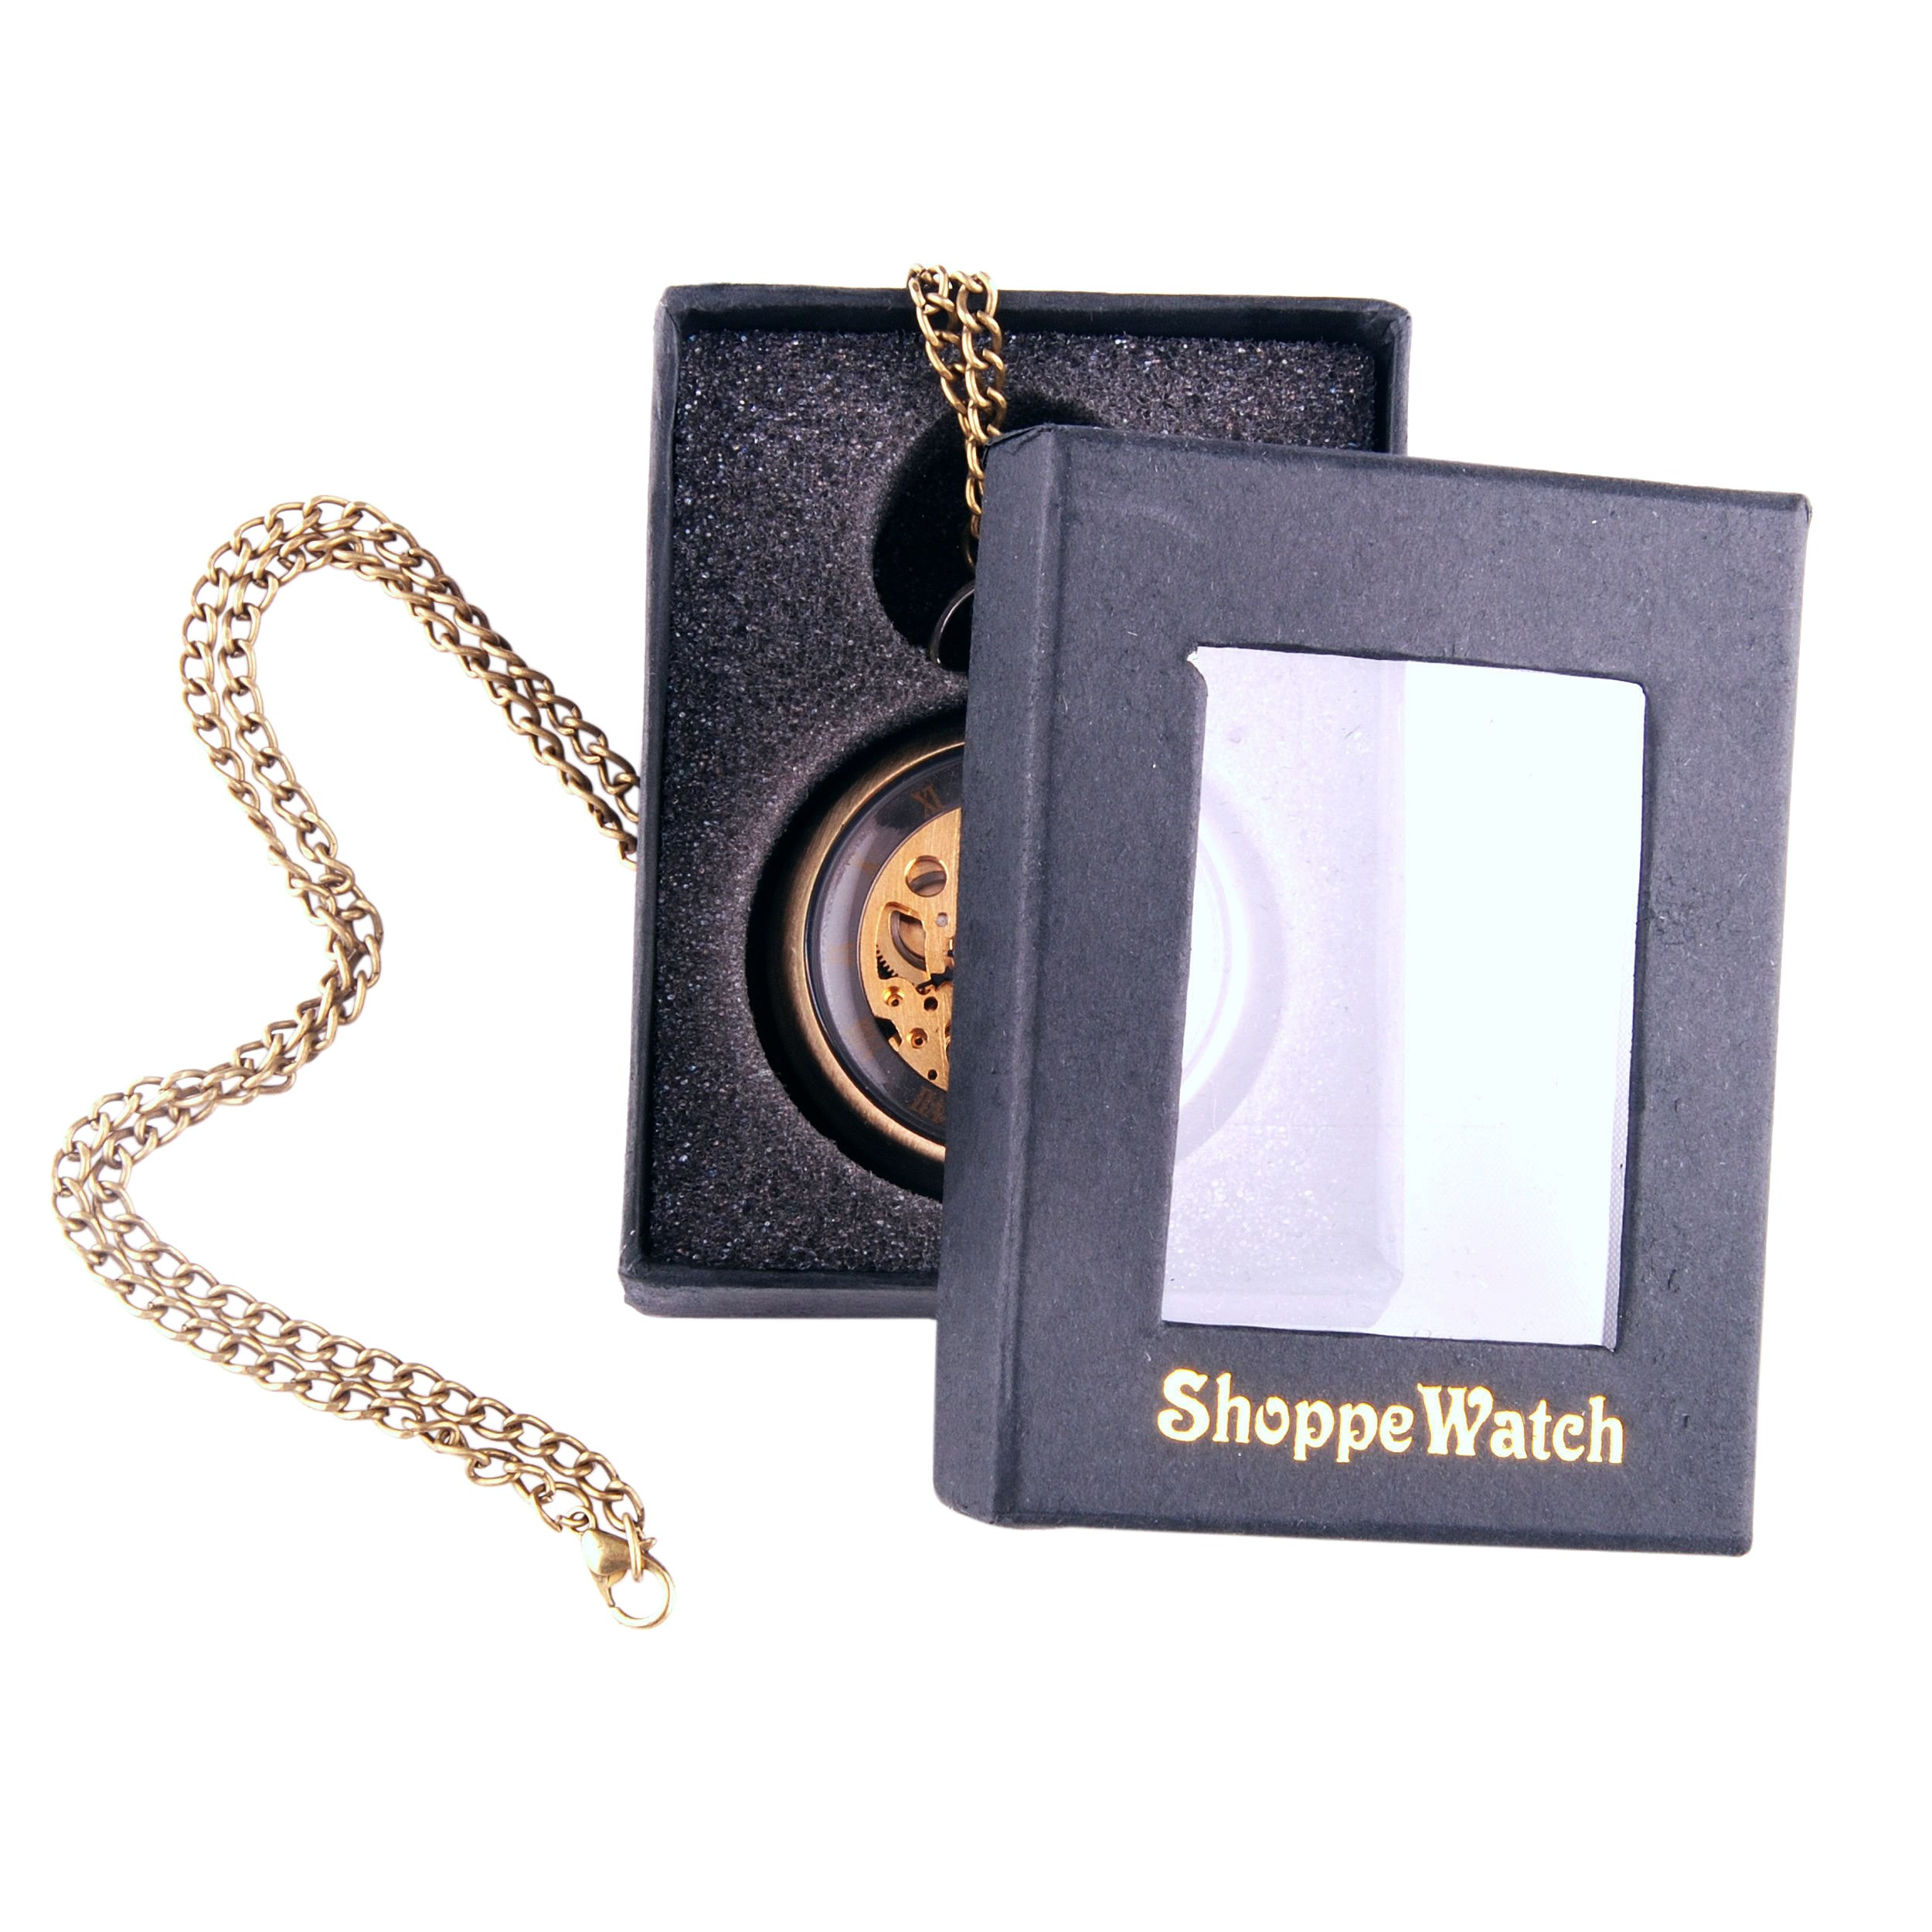 ShoppeWatch Hand Wind Mechanical Skeleton Pocket Watch Open Face Steampunk Style With Chain - PW12 by ShoppeWatch (Image #5)